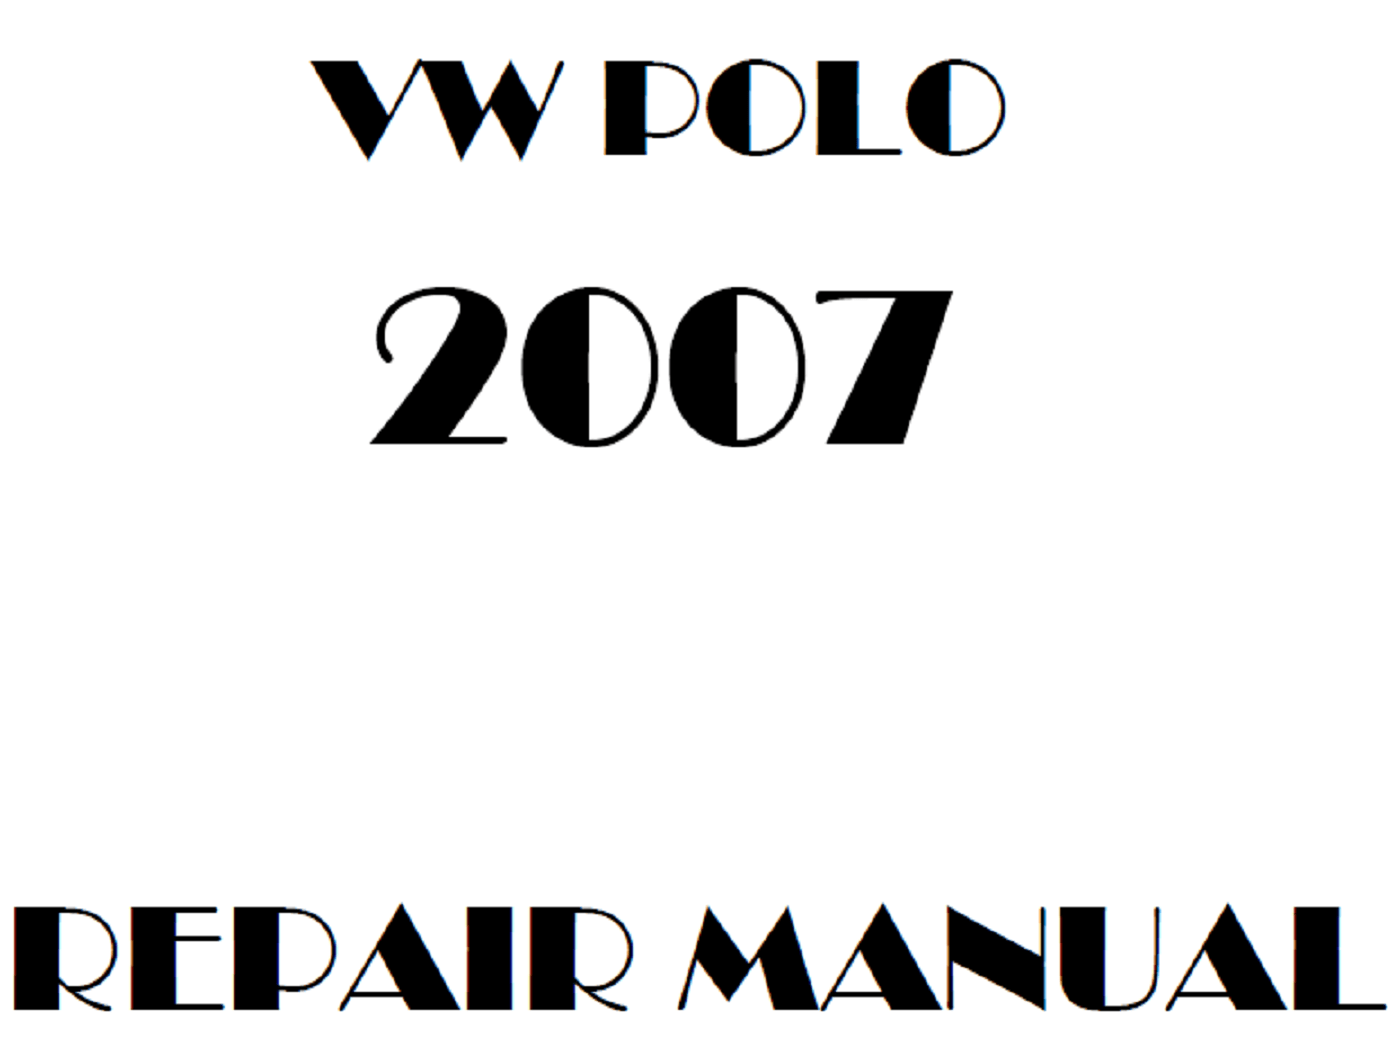 2007 Volkswagen Polo repair manual